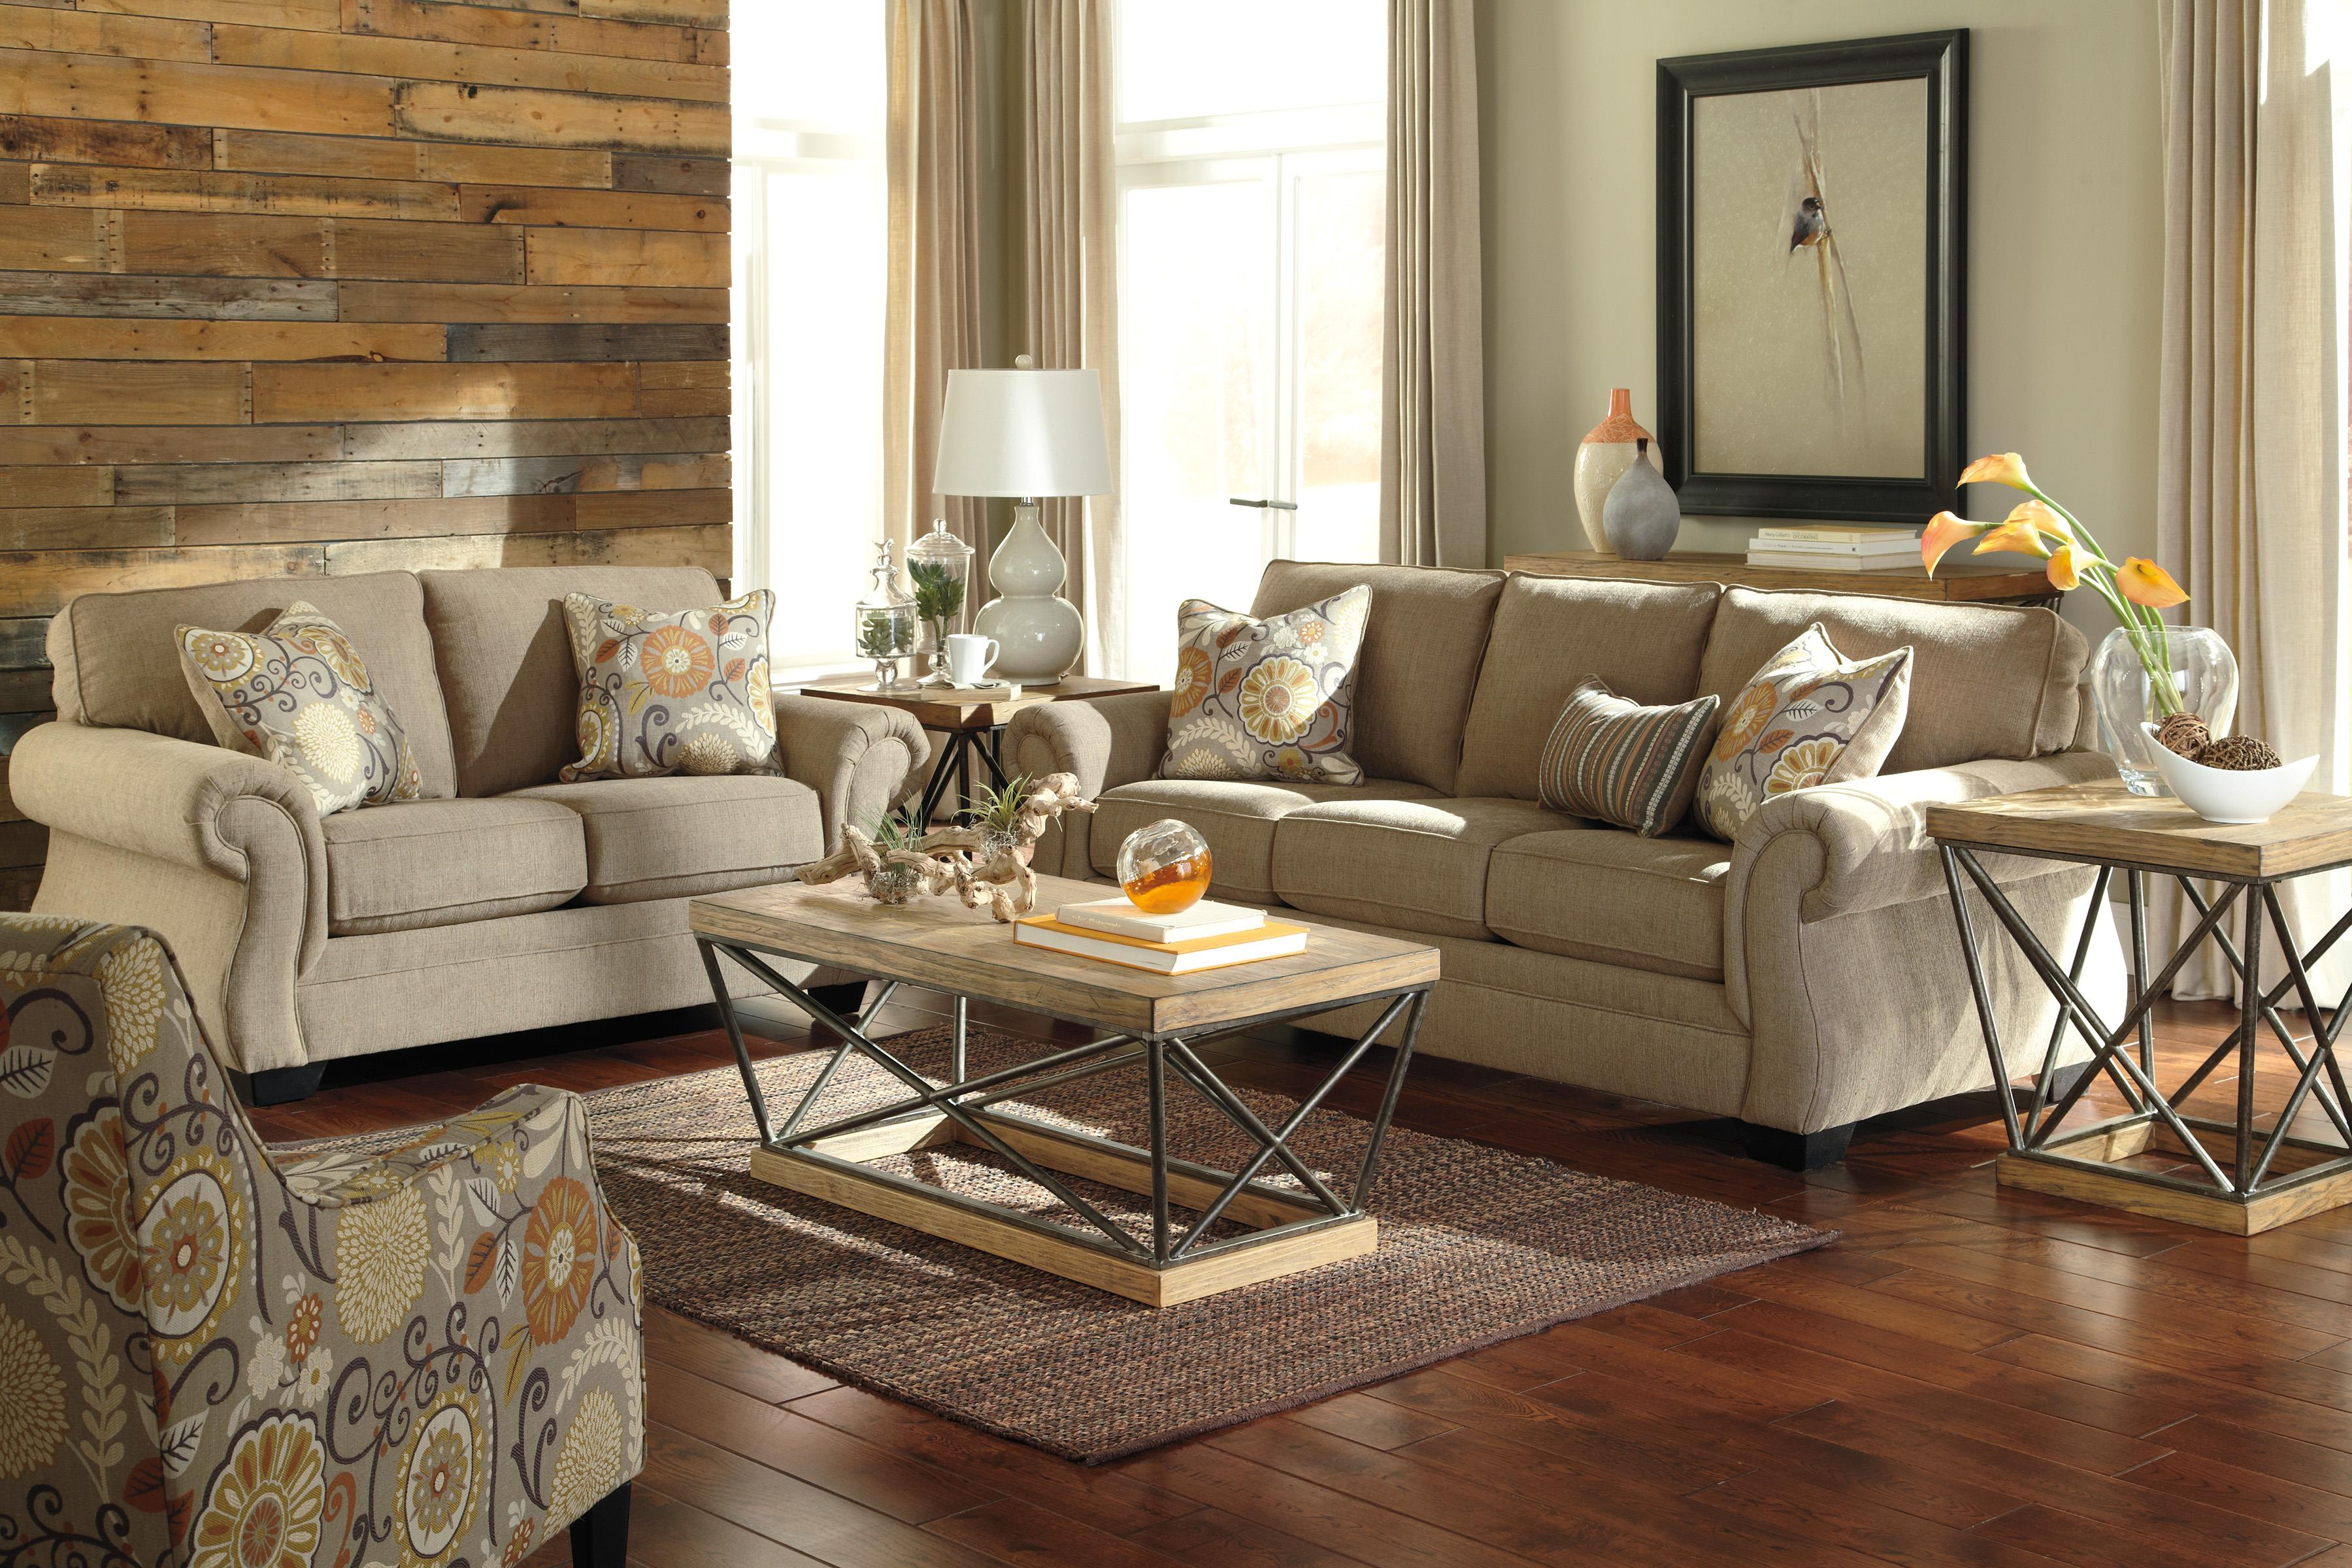 Living Room Sets With Accent Chairs Transitional Accent Chair With Floral Fabric By Benchcraft Wolf